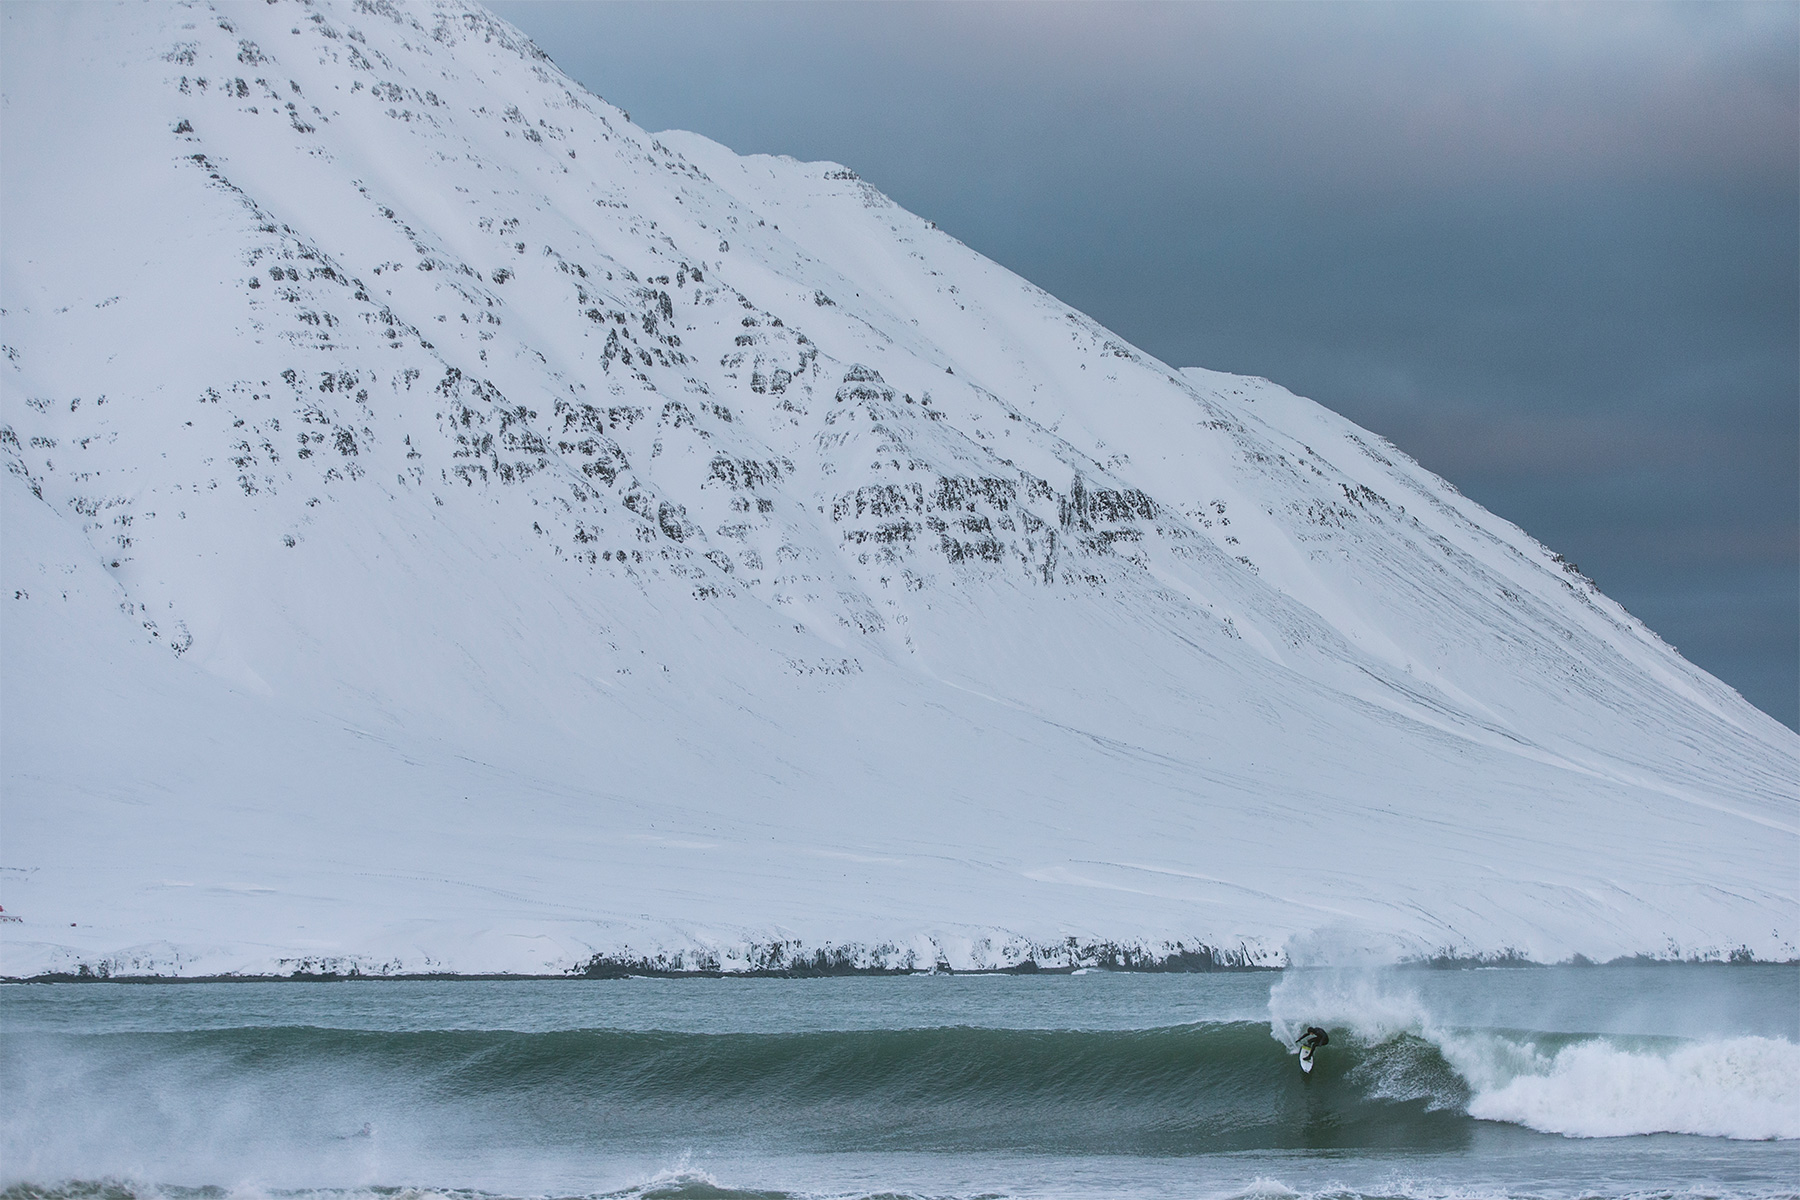 surfer turning on a wave in front of a snow covered mountain in iceland, photographed by elli thor magnussen